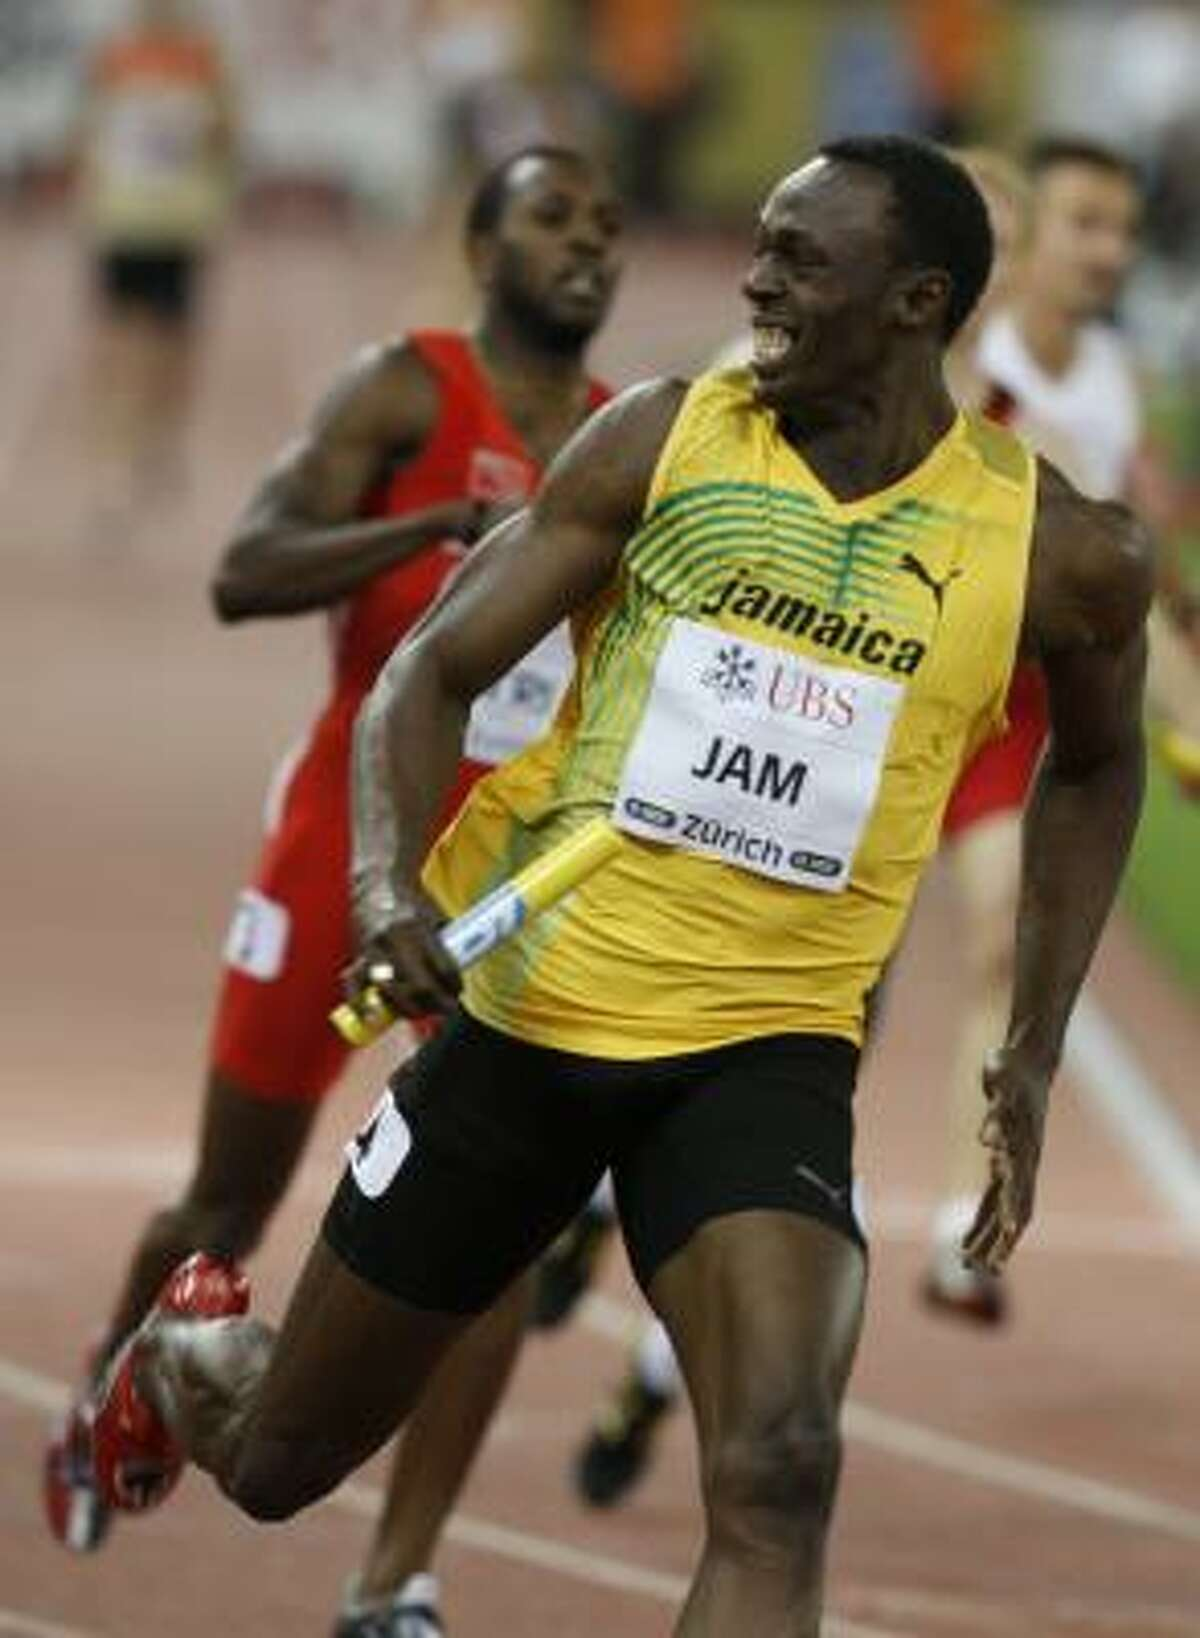 Usain Bolt got another win in the 4x100 relay.